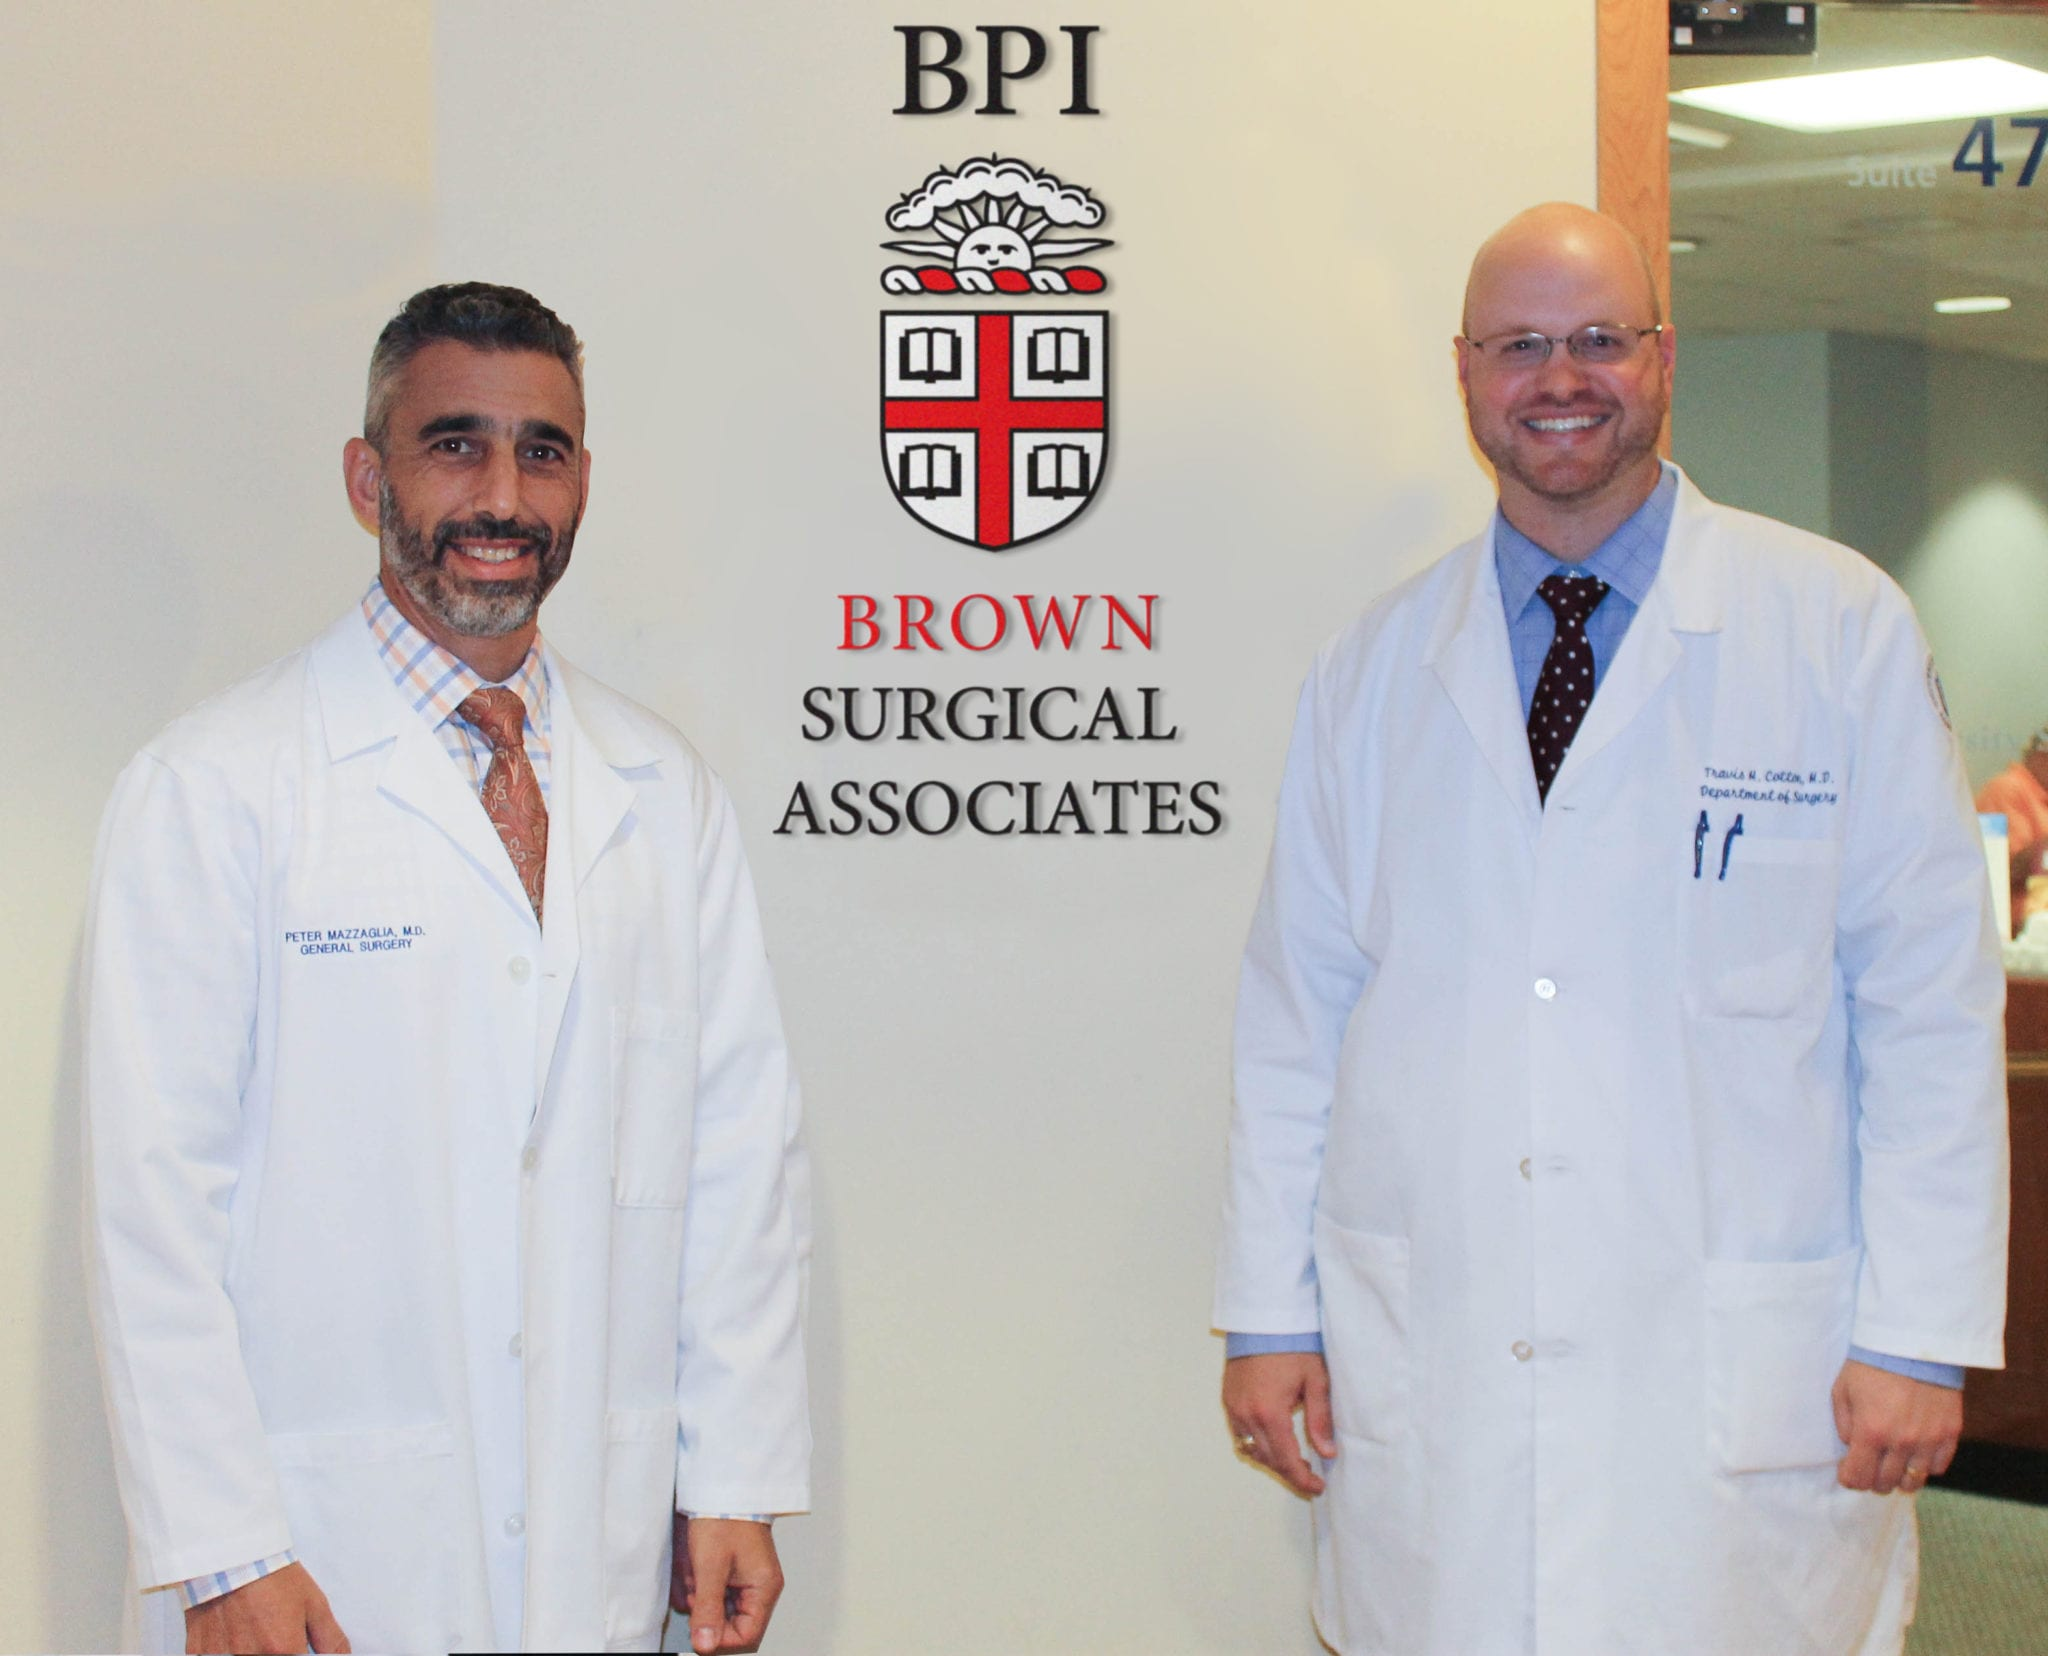 Endocrine Surgery Rhode Island - Brown Surgical Associates - Endocrine Surgeons near me - thyroidectomy - hyperthyroidism - thyroid cancer - goiter